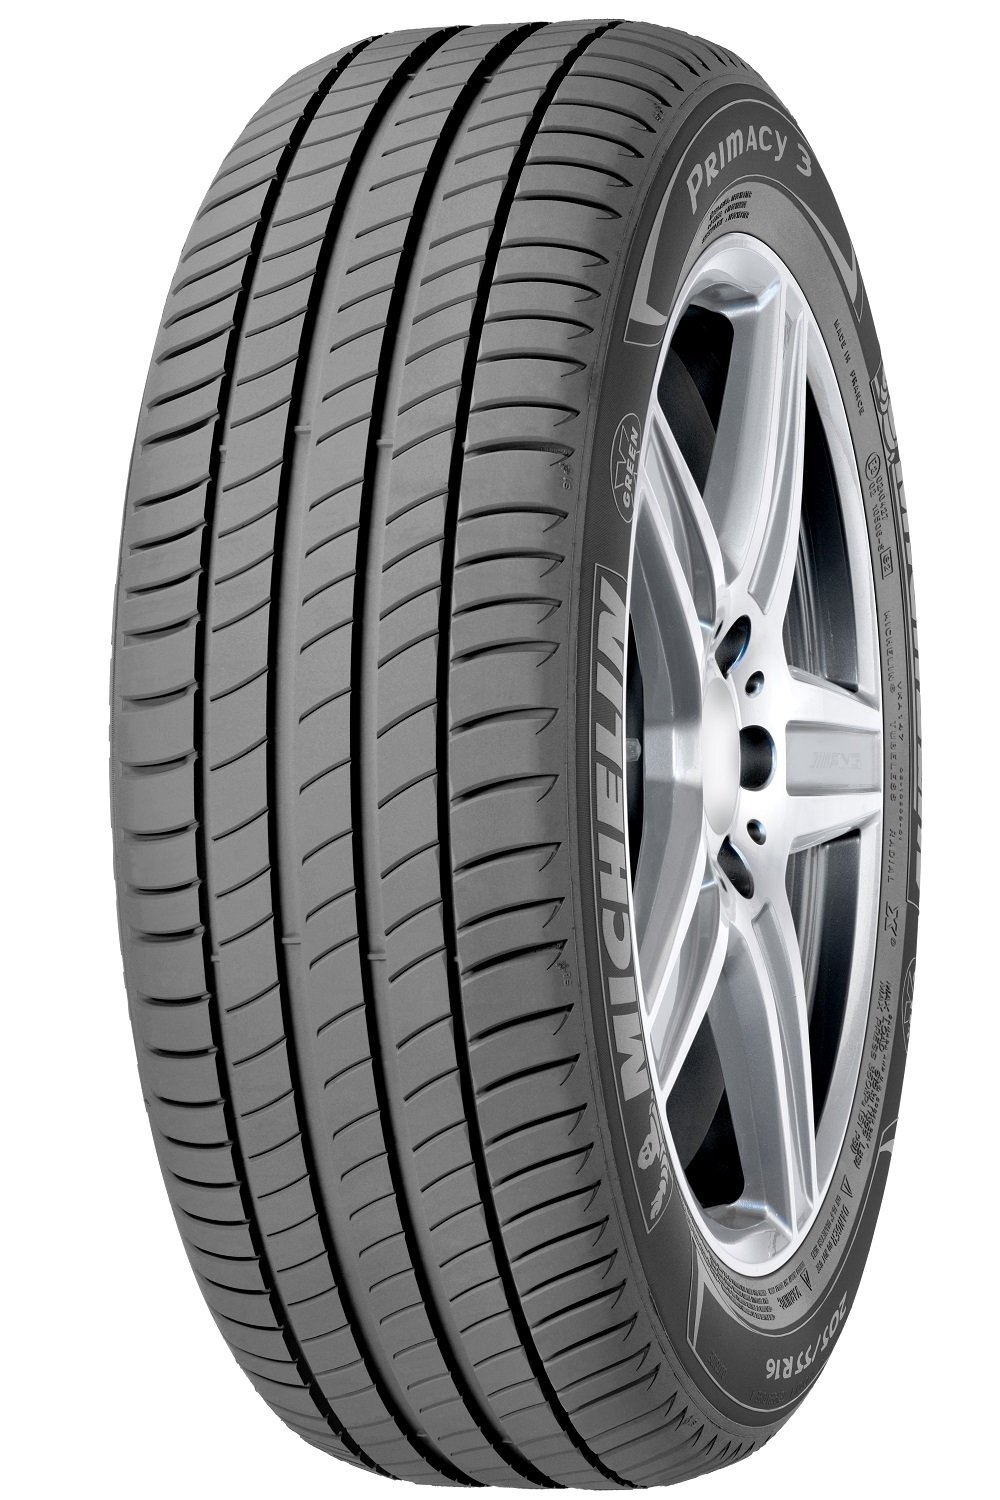 Michelin Pneu Primacy 3 205/45 R17 88 V Xl